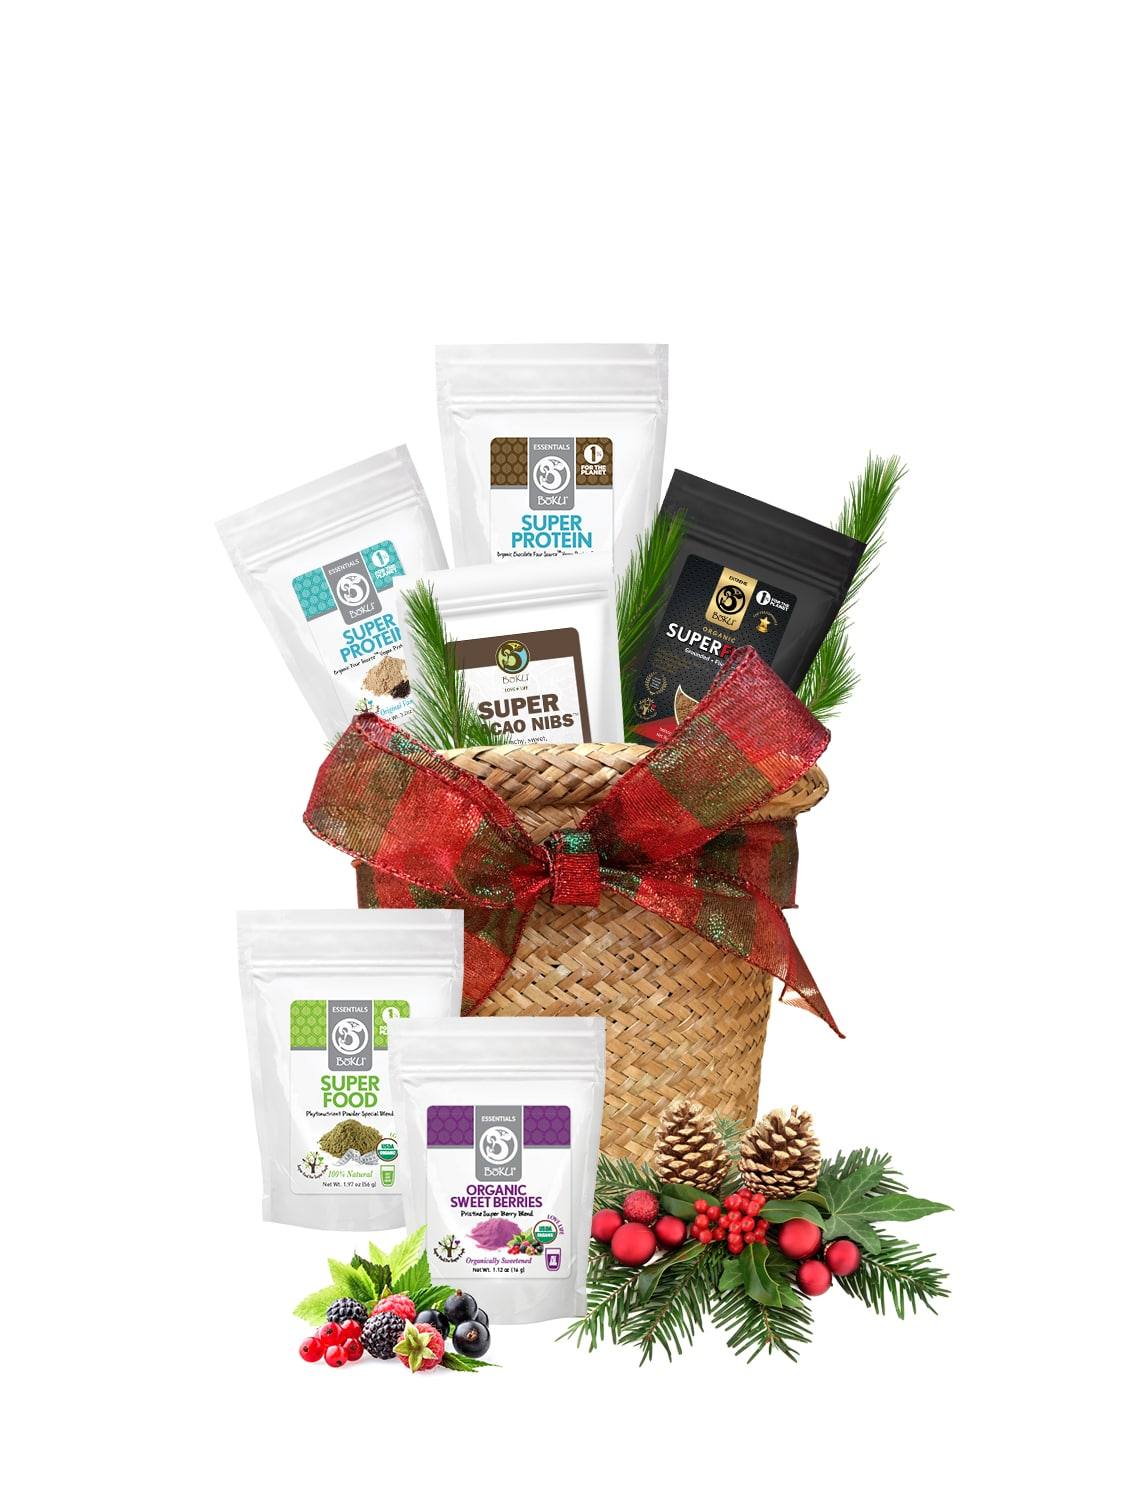 starterkit-holiday-basket1125x1500-nobg